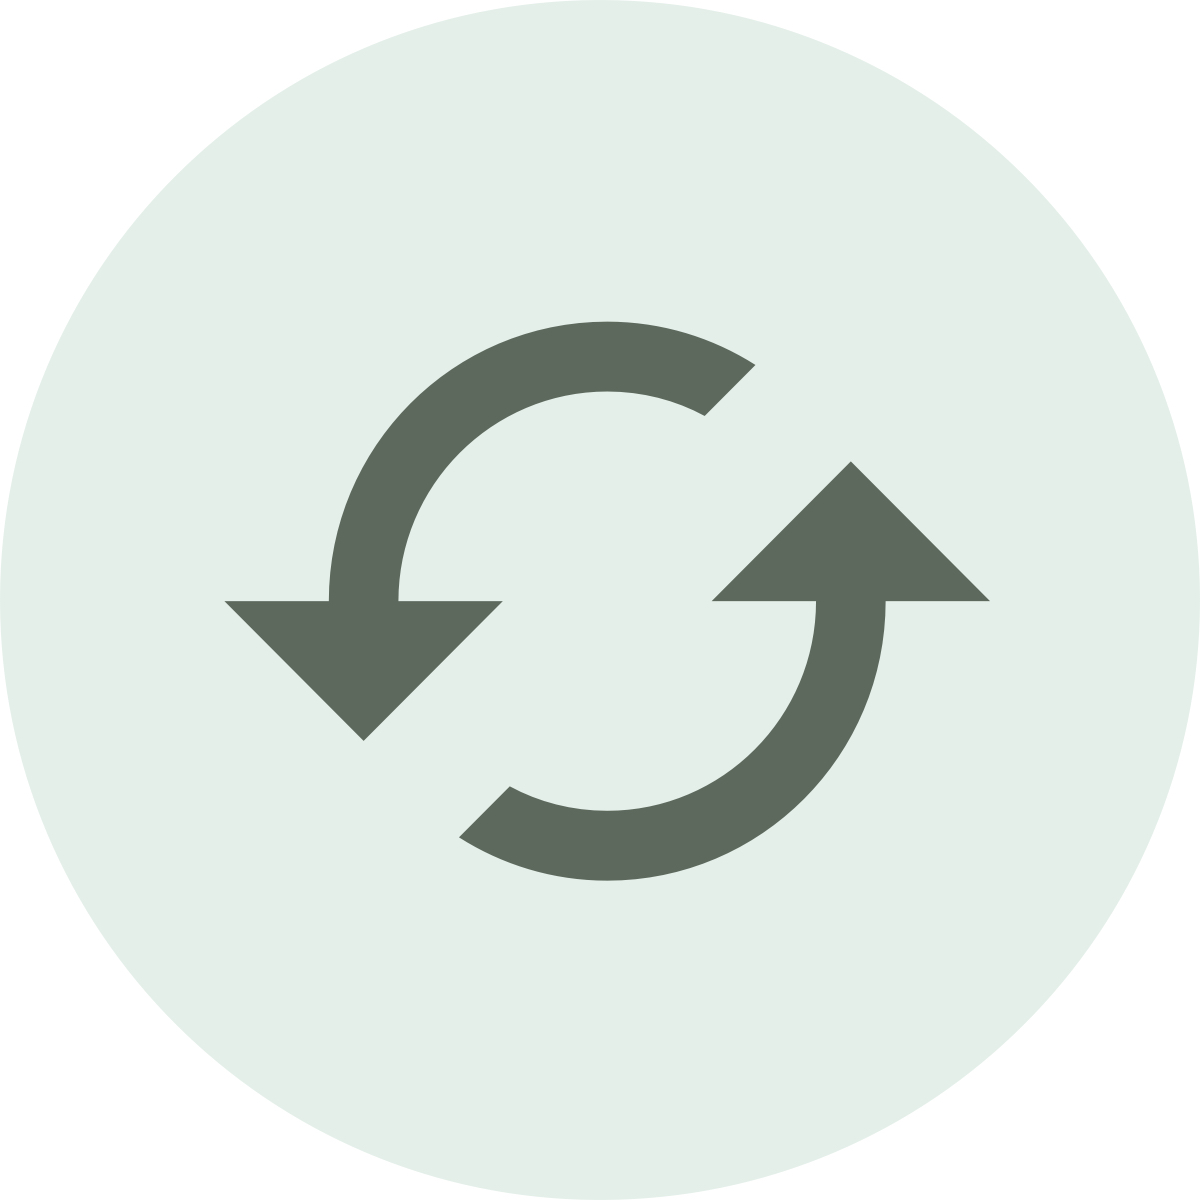 Two arrows in a circle to symbolize sustainability.